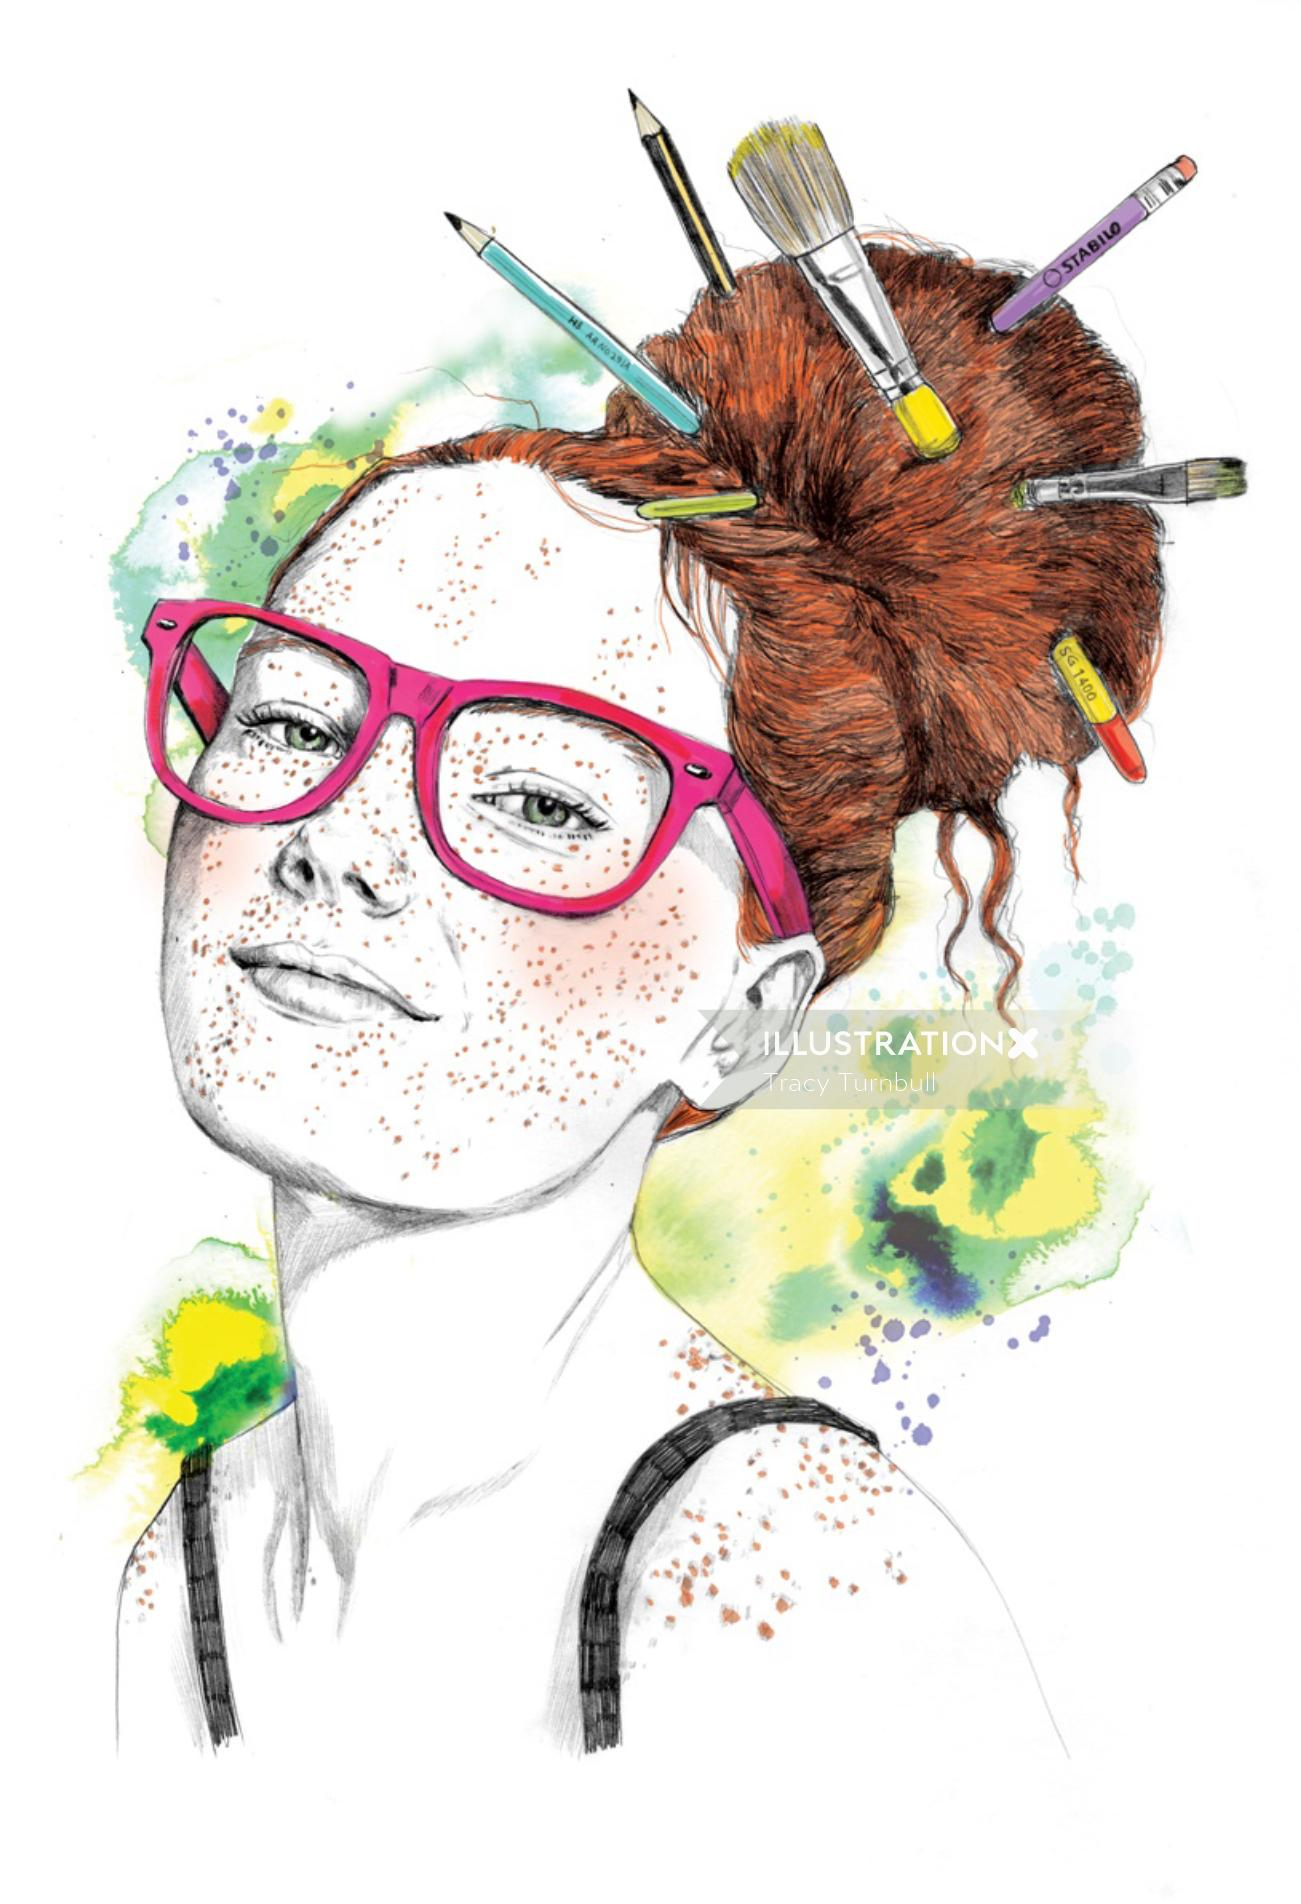 painterly artwork of a girl with brushes in hair